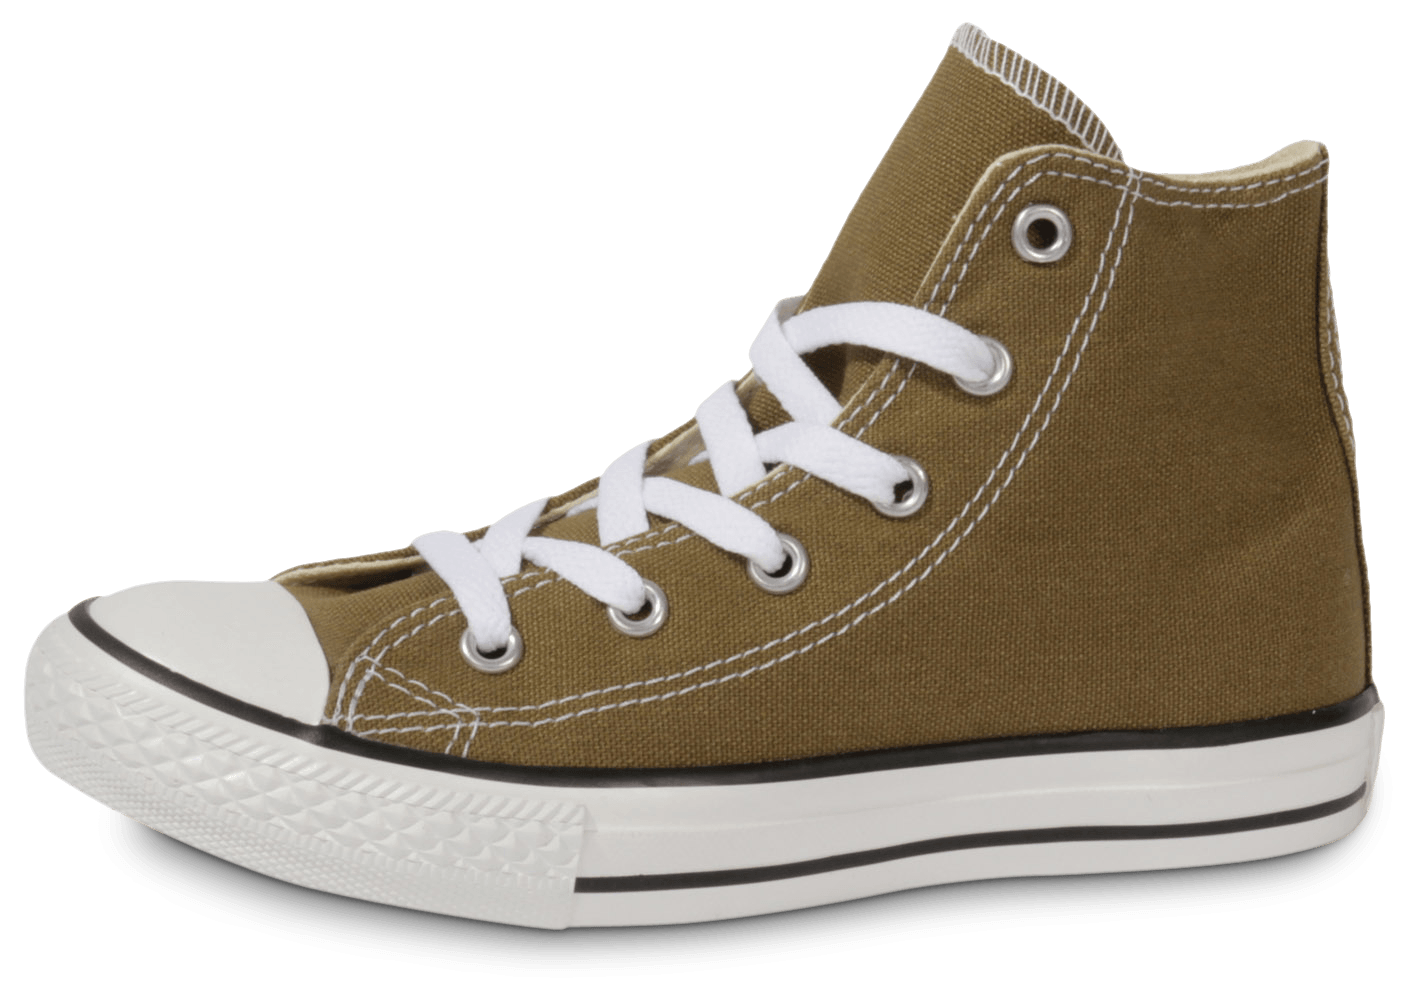 fdd78773f5726 Converse Chuck Taylor All Star Hi enfant cactus - Chaussures Chaussures -  Chausport